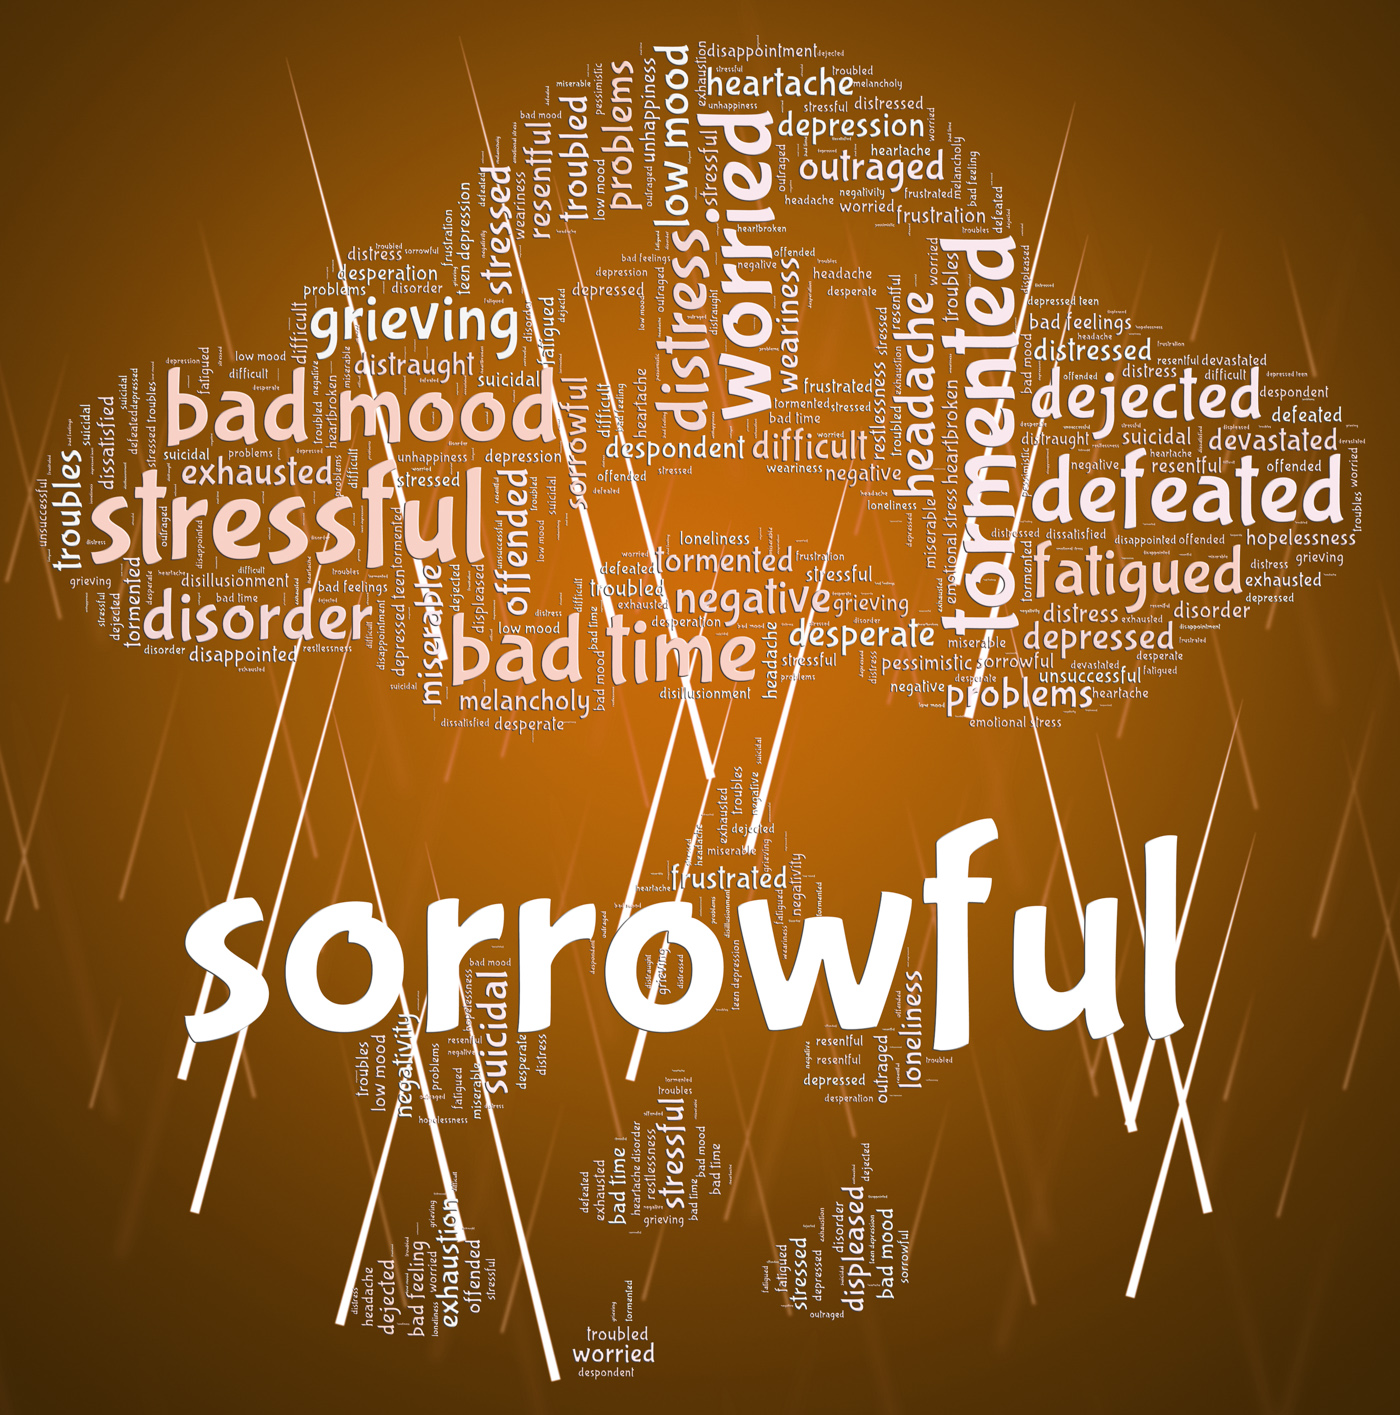 Sorrowful word represents grief stricken and dejected photo